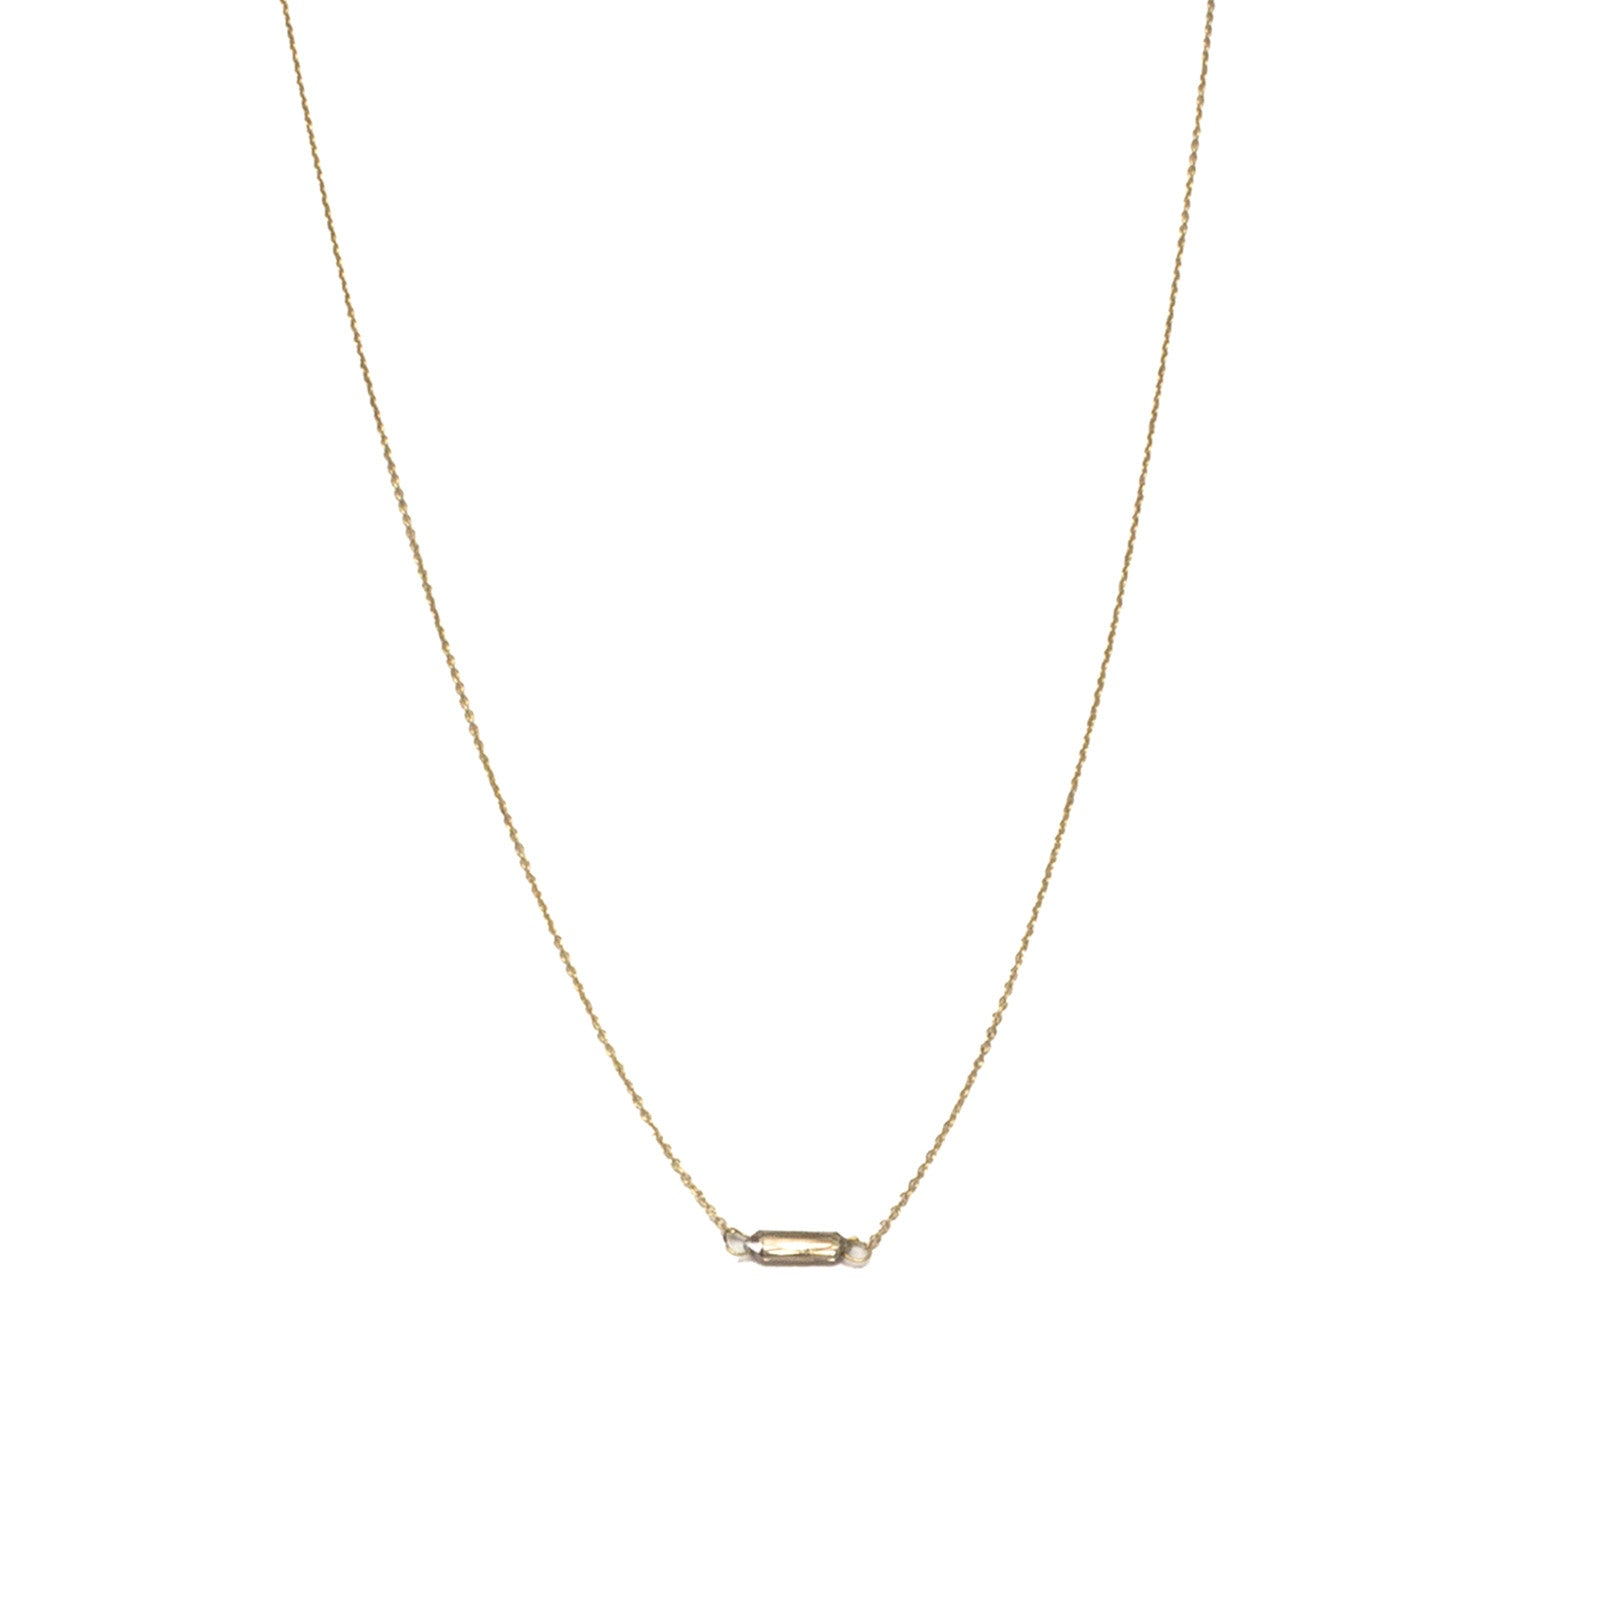 14k yellow gold horizontal diamond briolette necklace